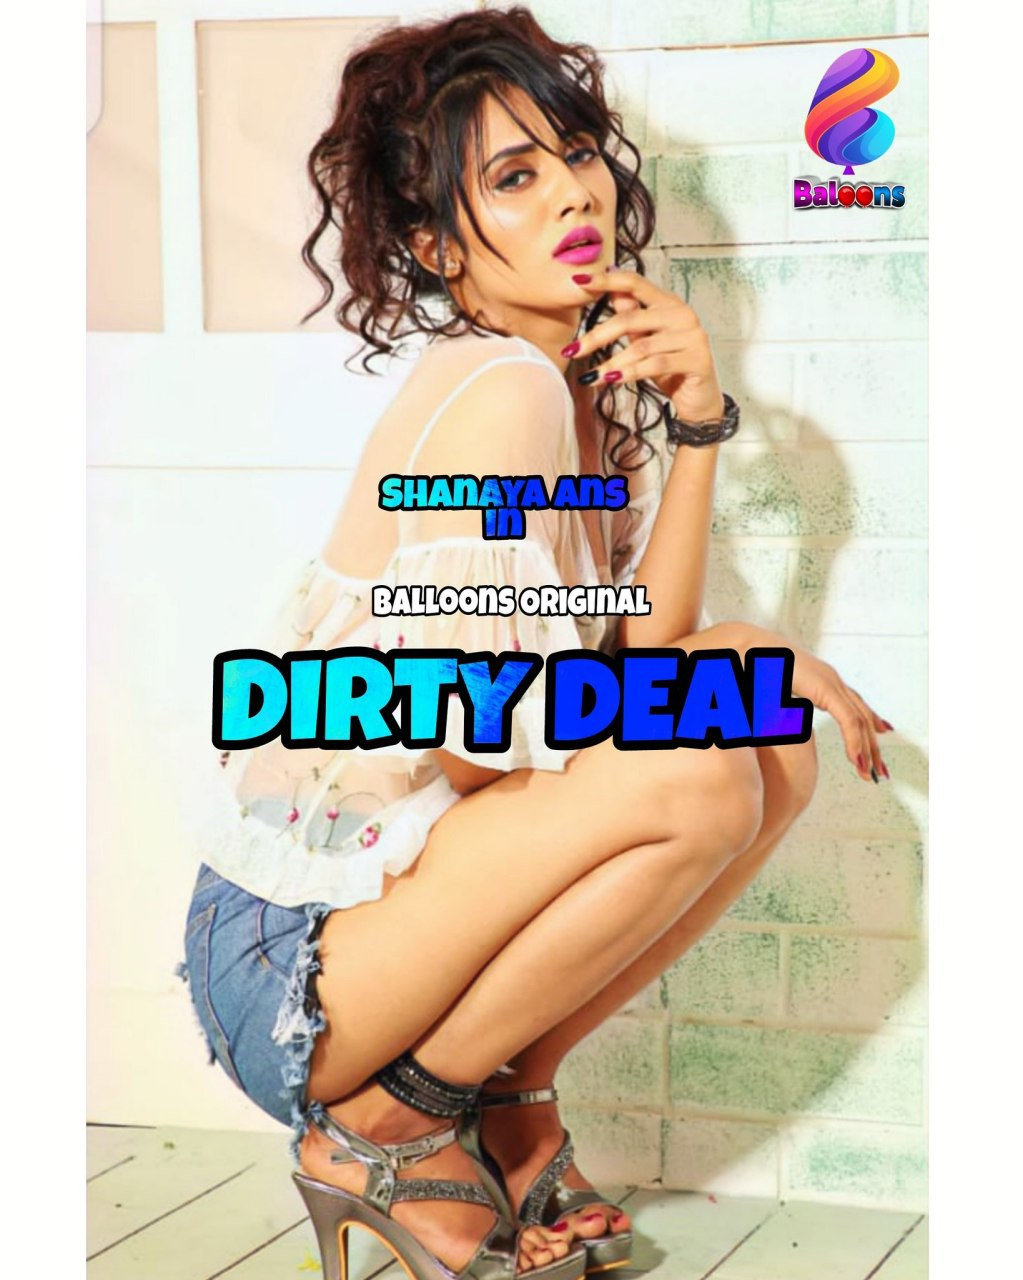 Dirty Deal 2020 S01E03 Hindi Balloons Original Web Series 720p HDRip 150MB